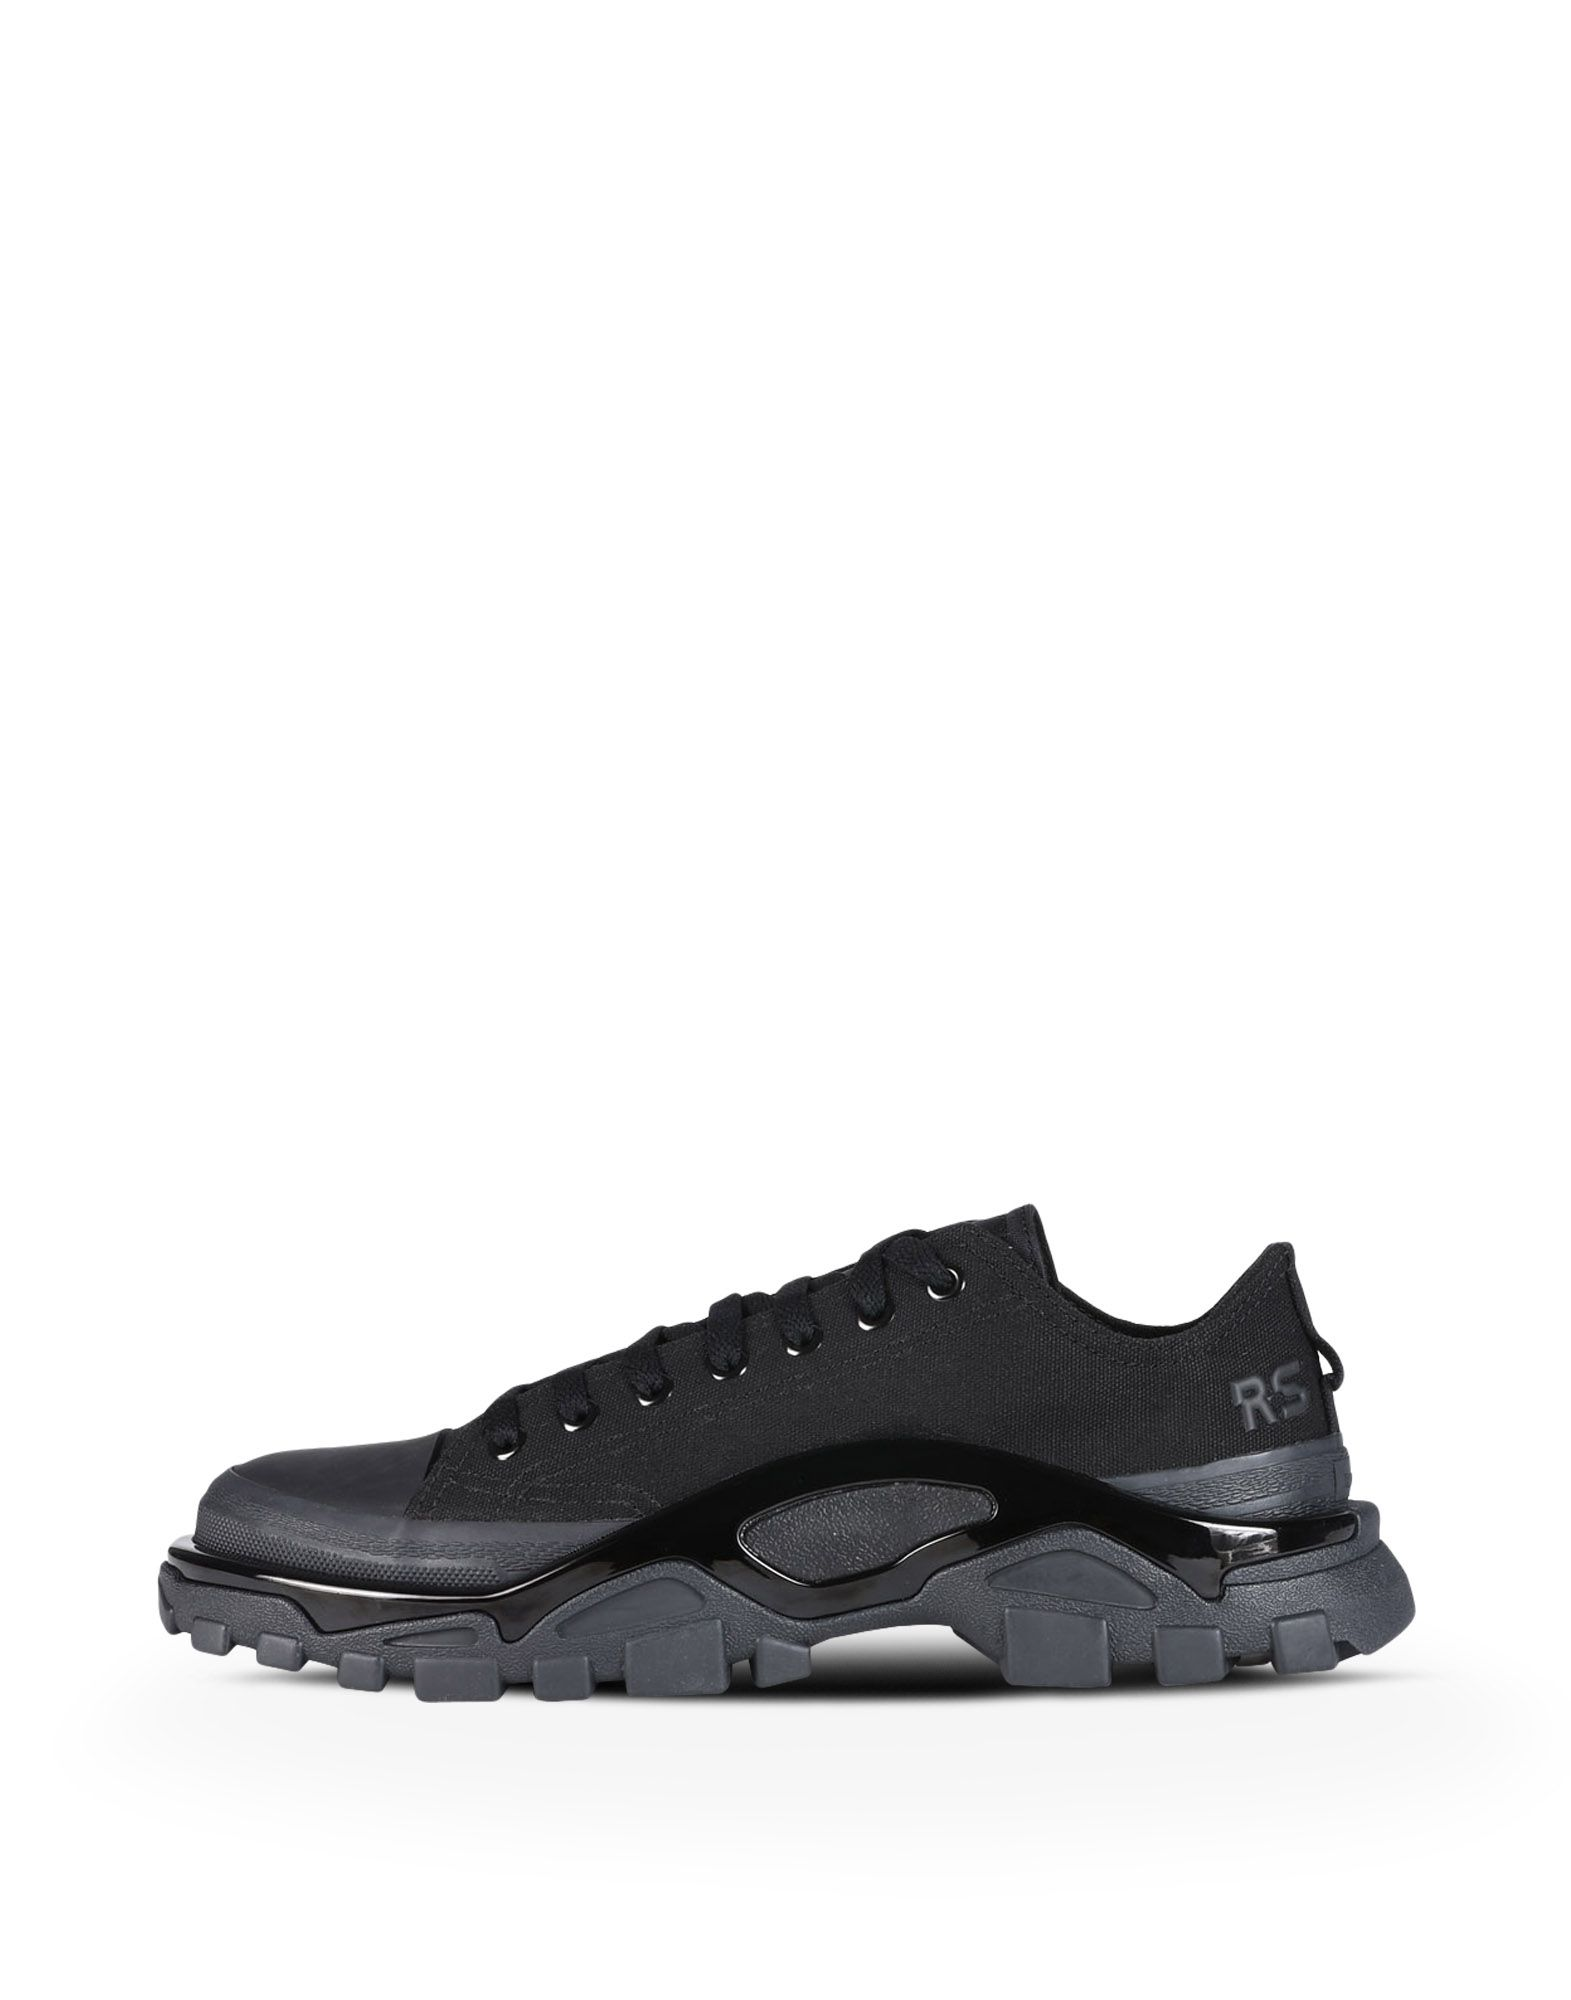 Detroit Runner sneakers - Black adidas by Raf Simons zz9zIFC